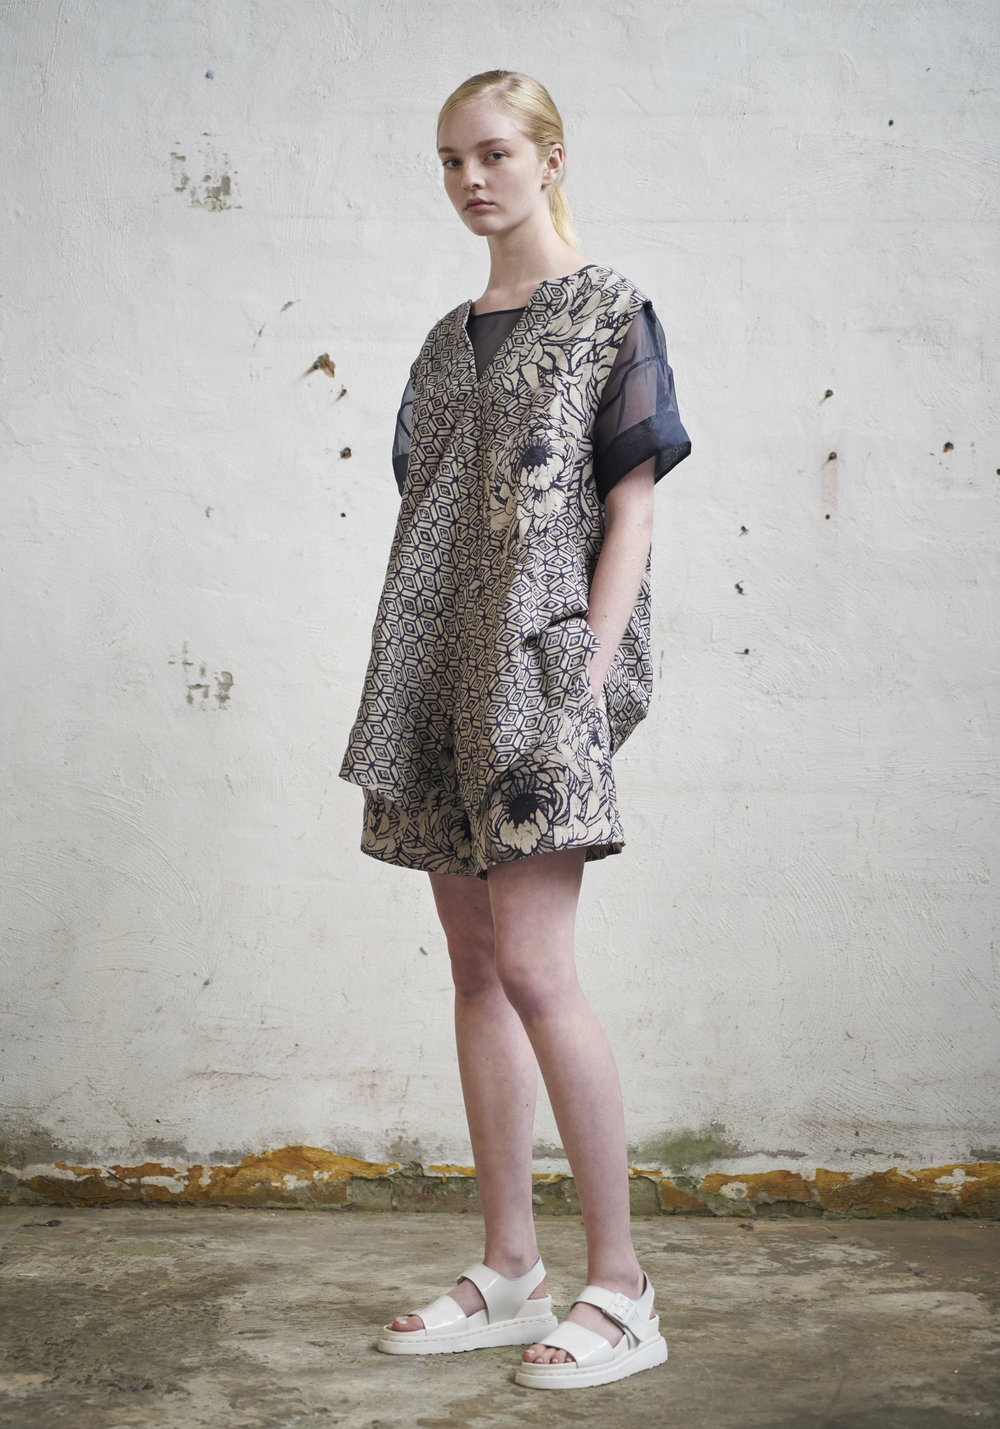 L O O K 1 1  913/S172172 Cross Front Vest  913/S176133S Gathered Wide Shorts  105/S171602R Boxy Top W/Sleeves